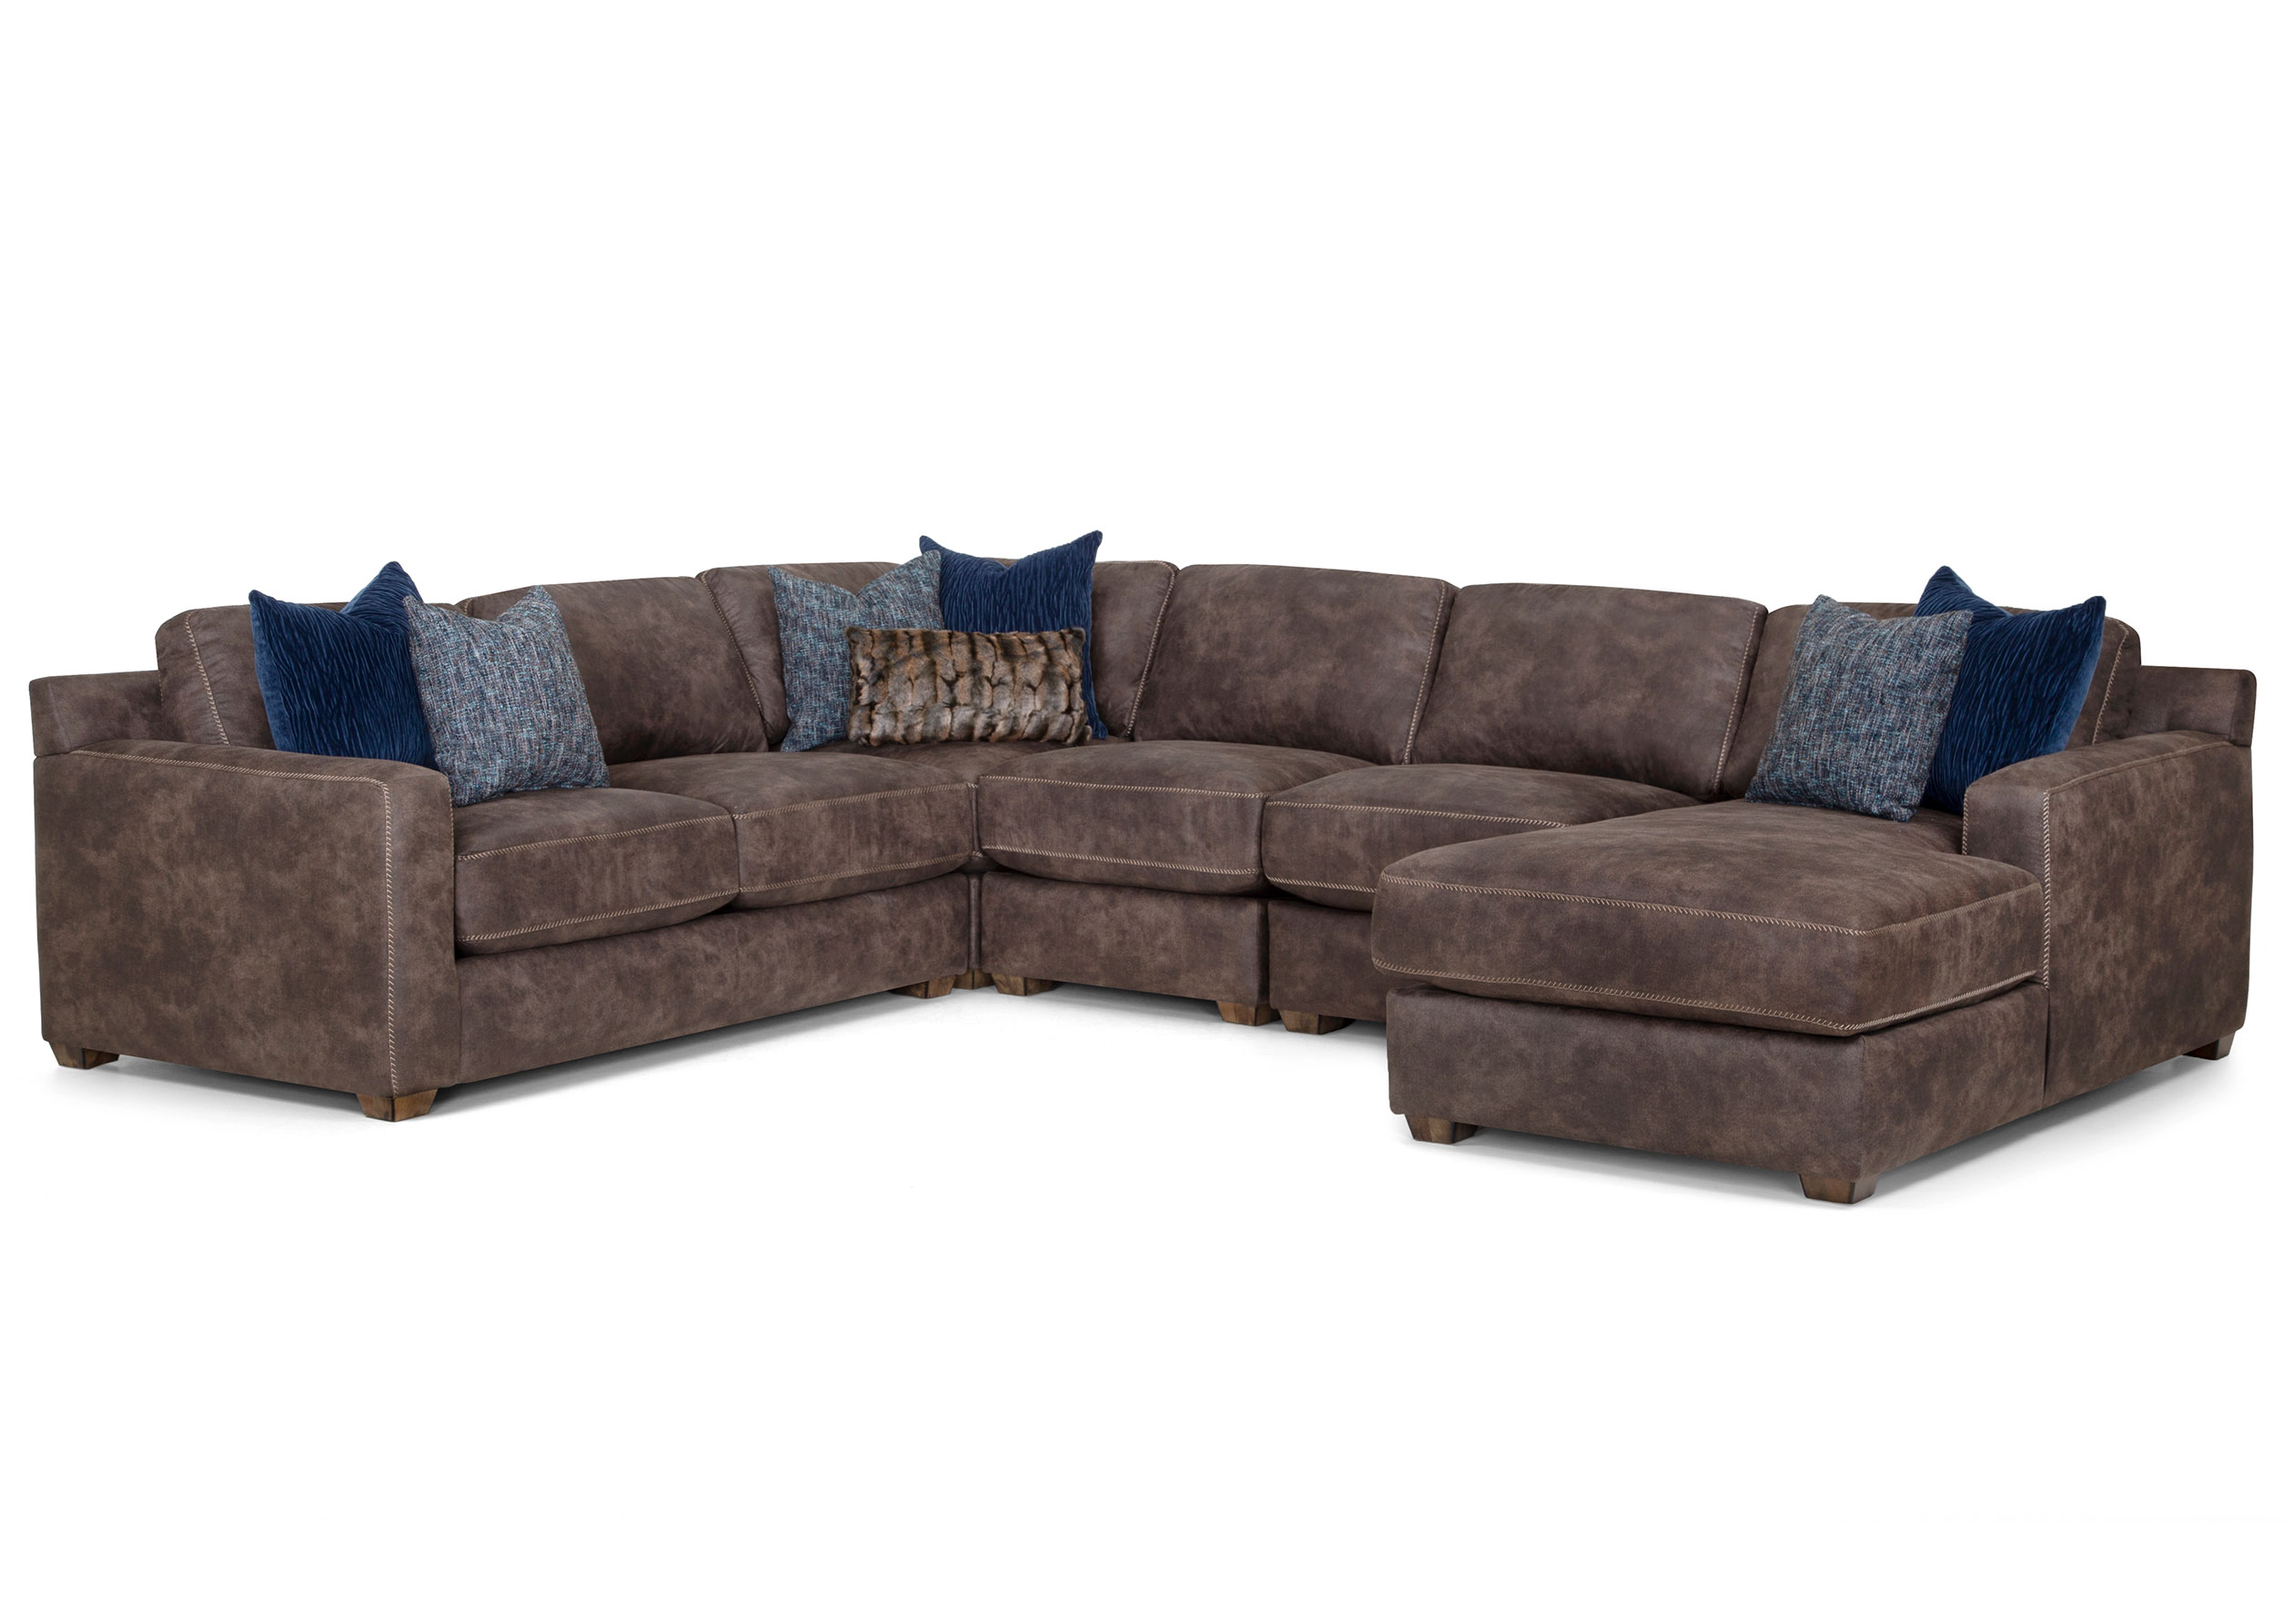 Surprising Jameson Three Piece Sectional Includes Sofas And Sectionals Beatyapartments Chair Design Images Beatyapartmentscom